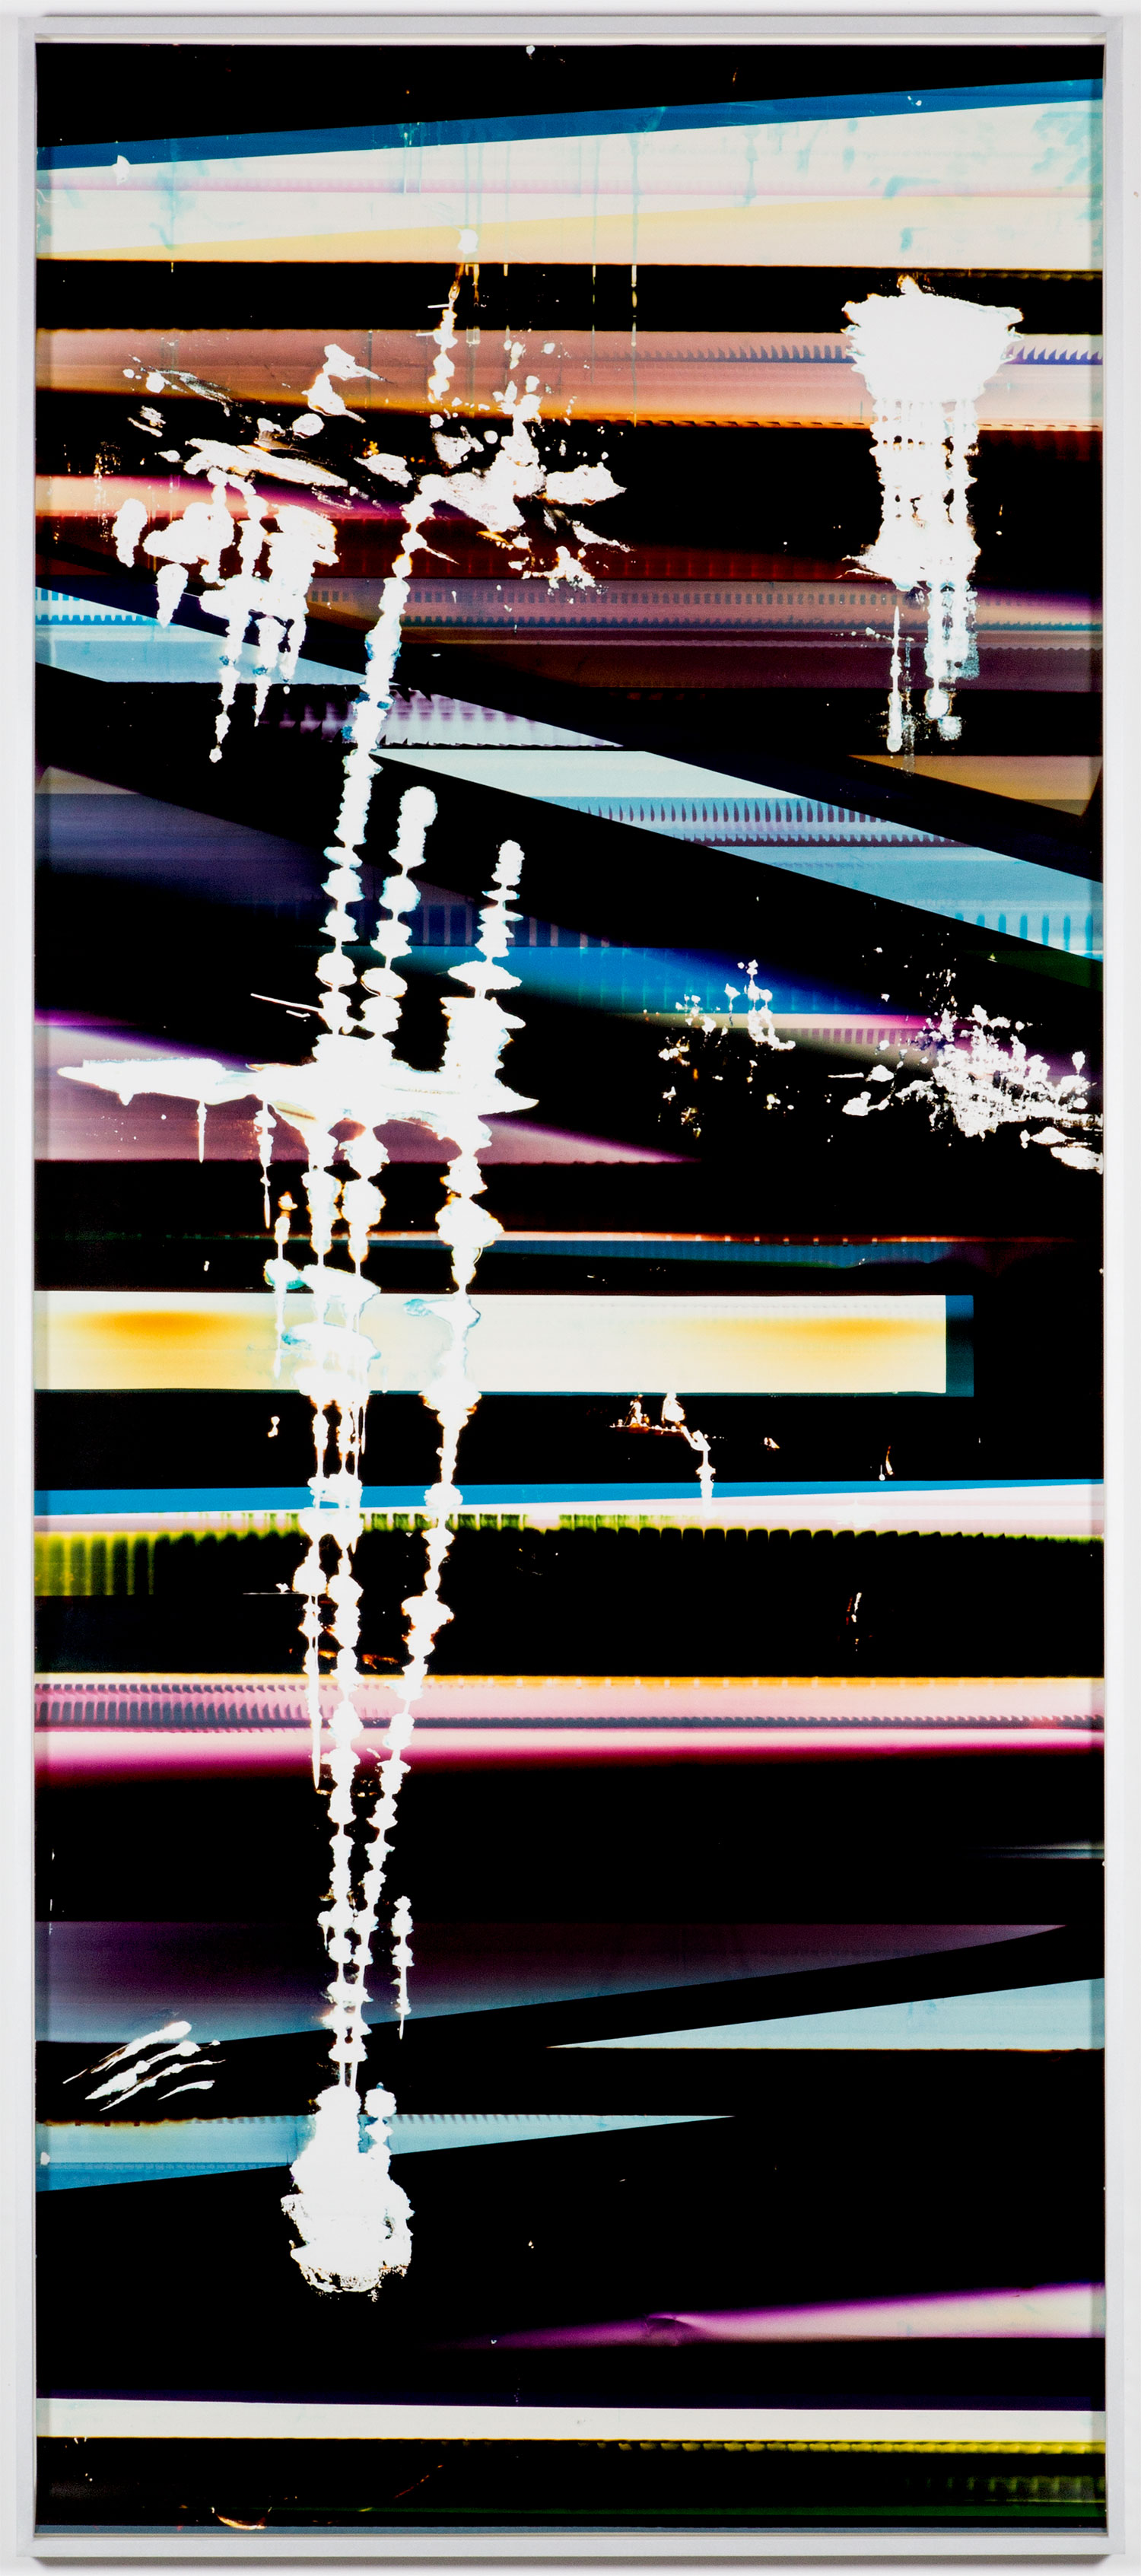 Cross-Contaminated RA4 Contact Print [Black Curl (9:6/CYM/Six Magnet: Los Angeles, California, January 27, 2014, Fuji Color Crystal Archive Super Type C, Em. No. 101-006, Kodak Ektacolor RA Bleach-Fix and Replenisher, Cat. No. 847 1484, 06214), Kreonite KM IV 5225 RA4 Color Processor, Ser. No. 00092174]   2016  Color photographic paper  119 3/4 x51 1/2 inches   RA4 Contact Print Curls, 2014–    Automat, 2016